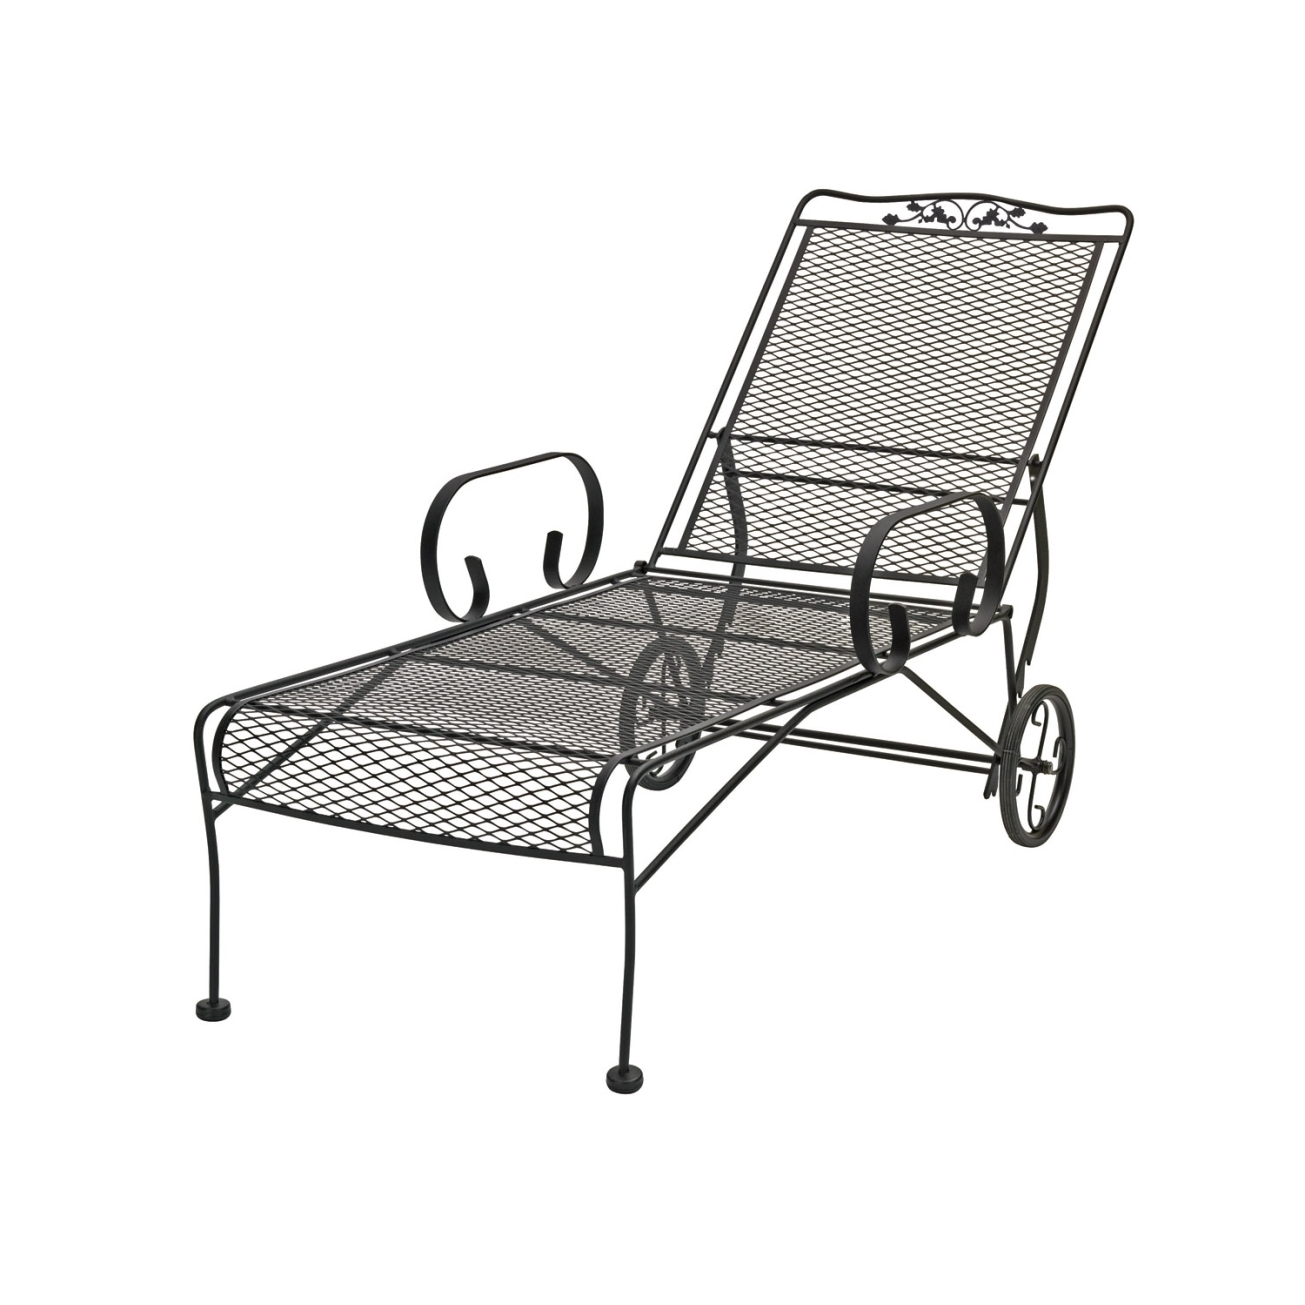 Well Known Lounge Chair : Discount Outdoor Furniture Rolston Patio Furniture Throughout Plastic Chaise Lounge Chairs For Outdoors (View 9 of 15)